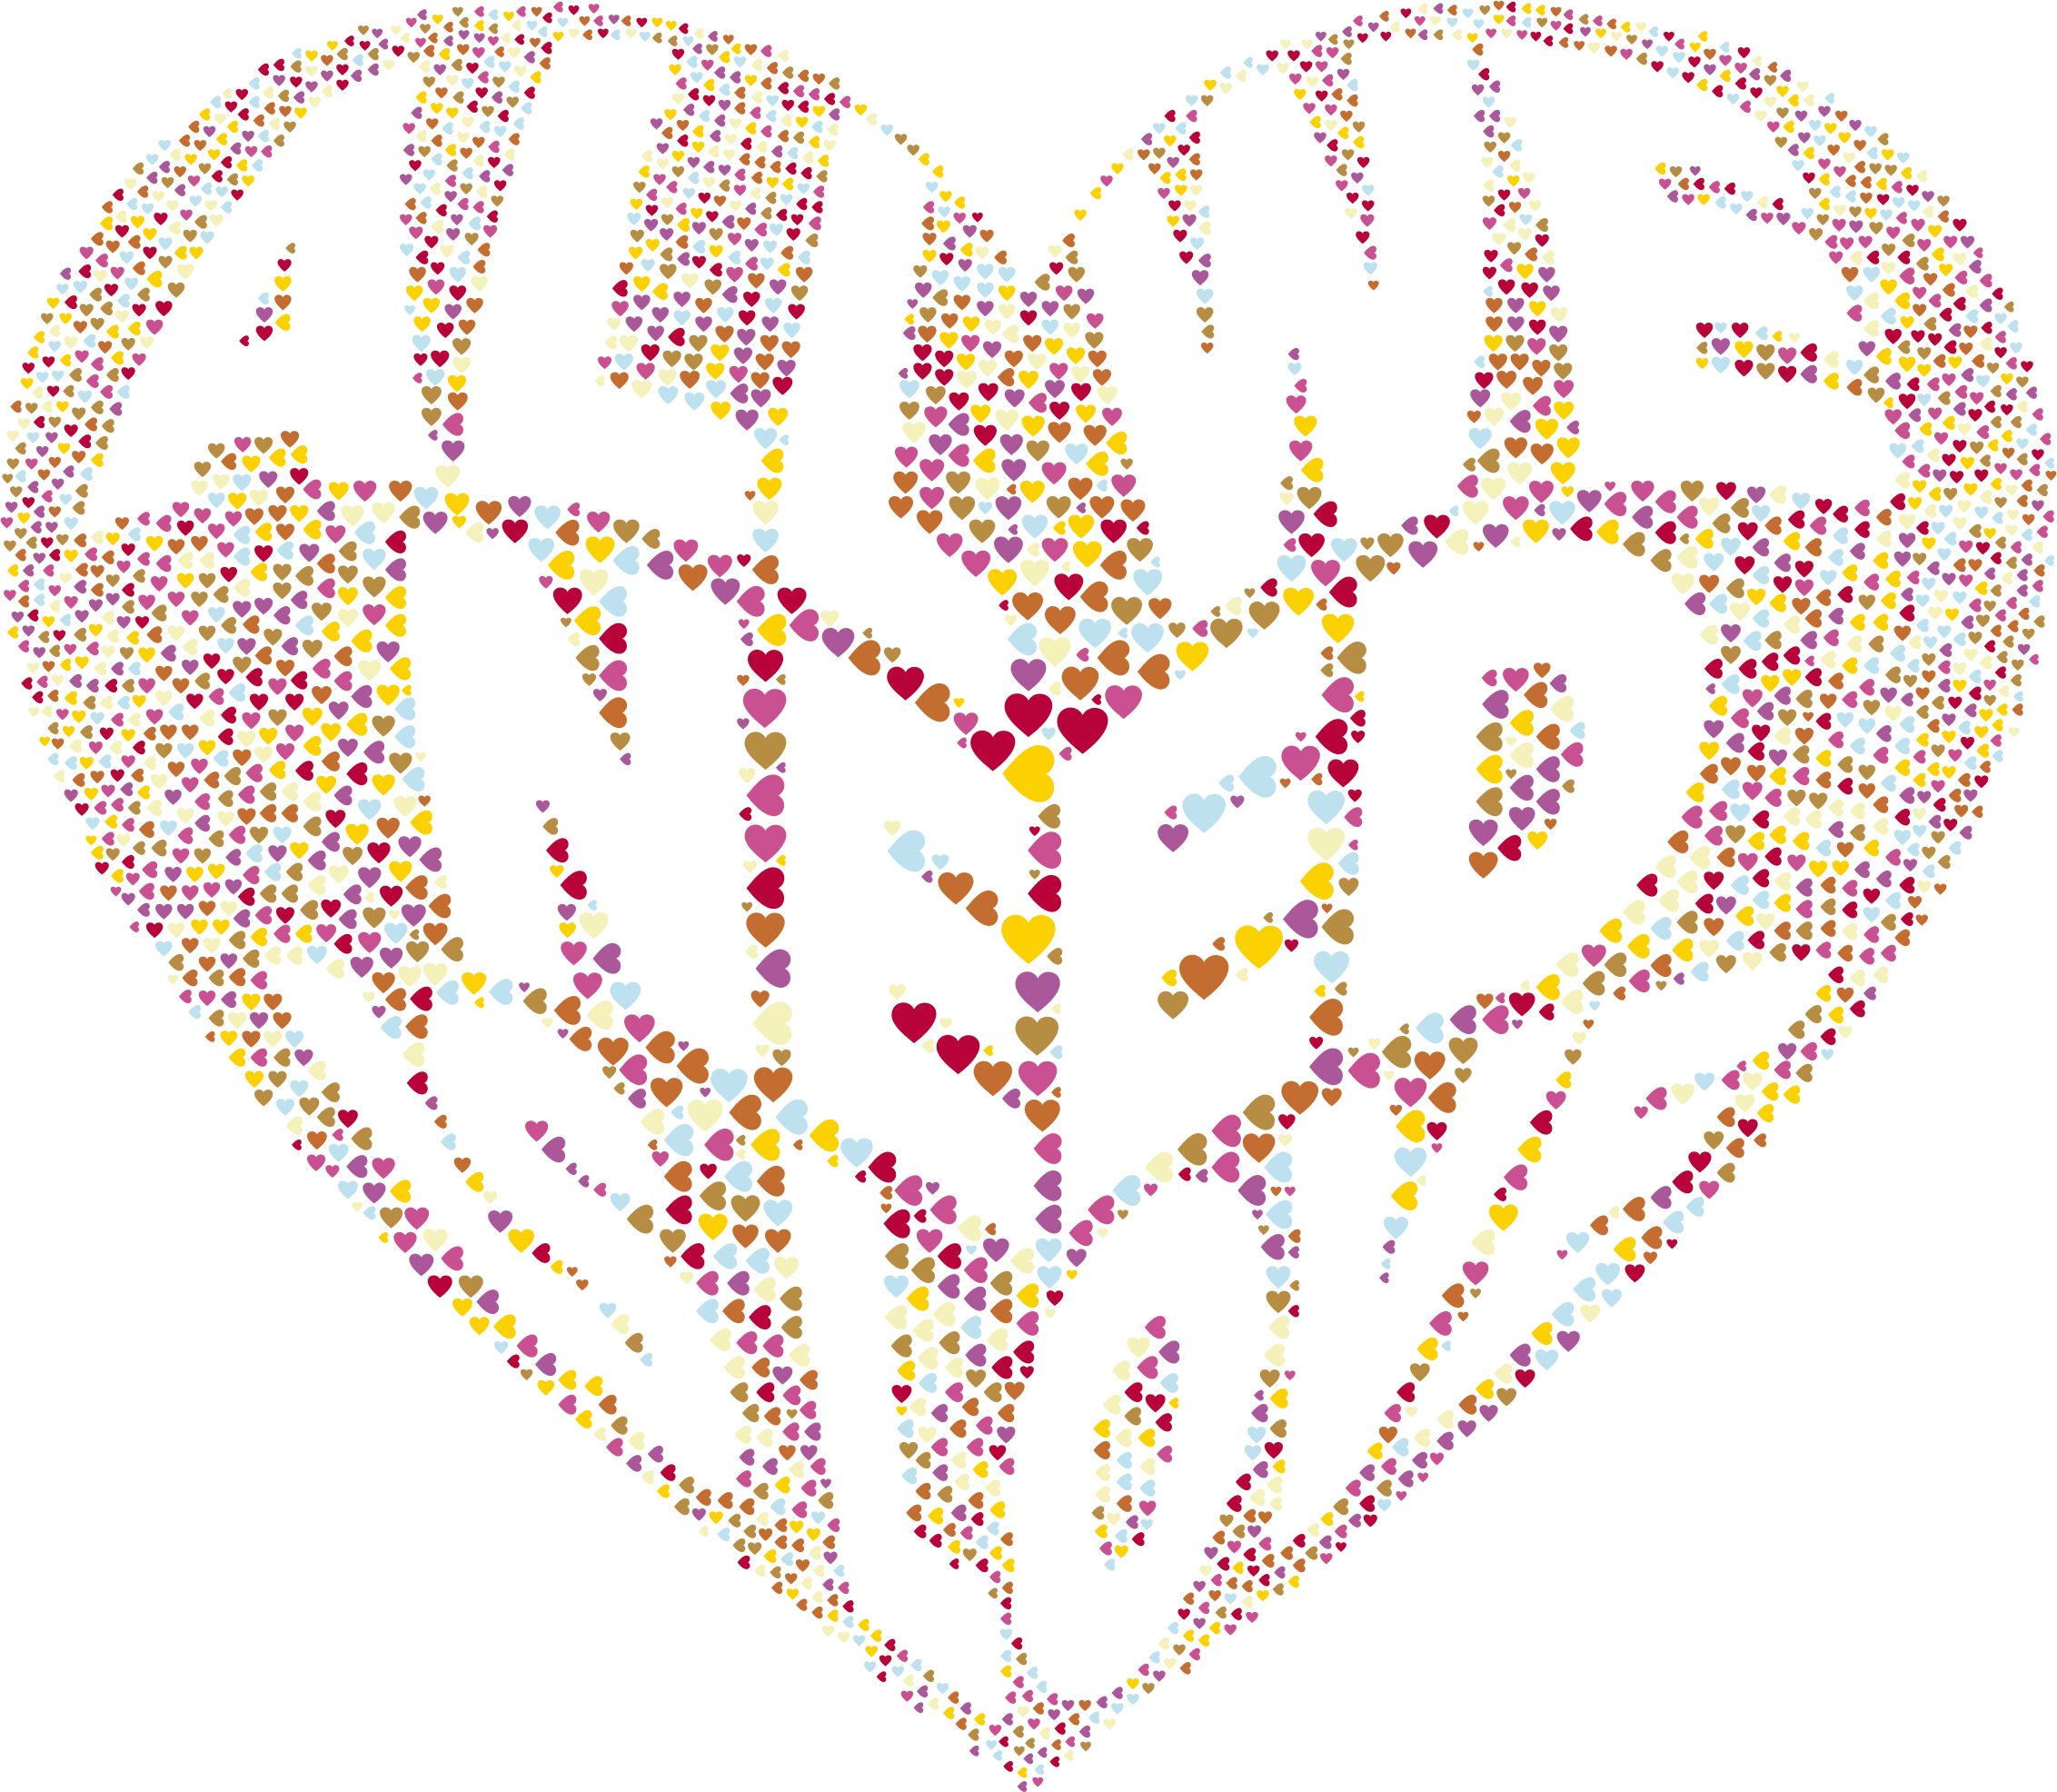 All We Need No Background by GDJ